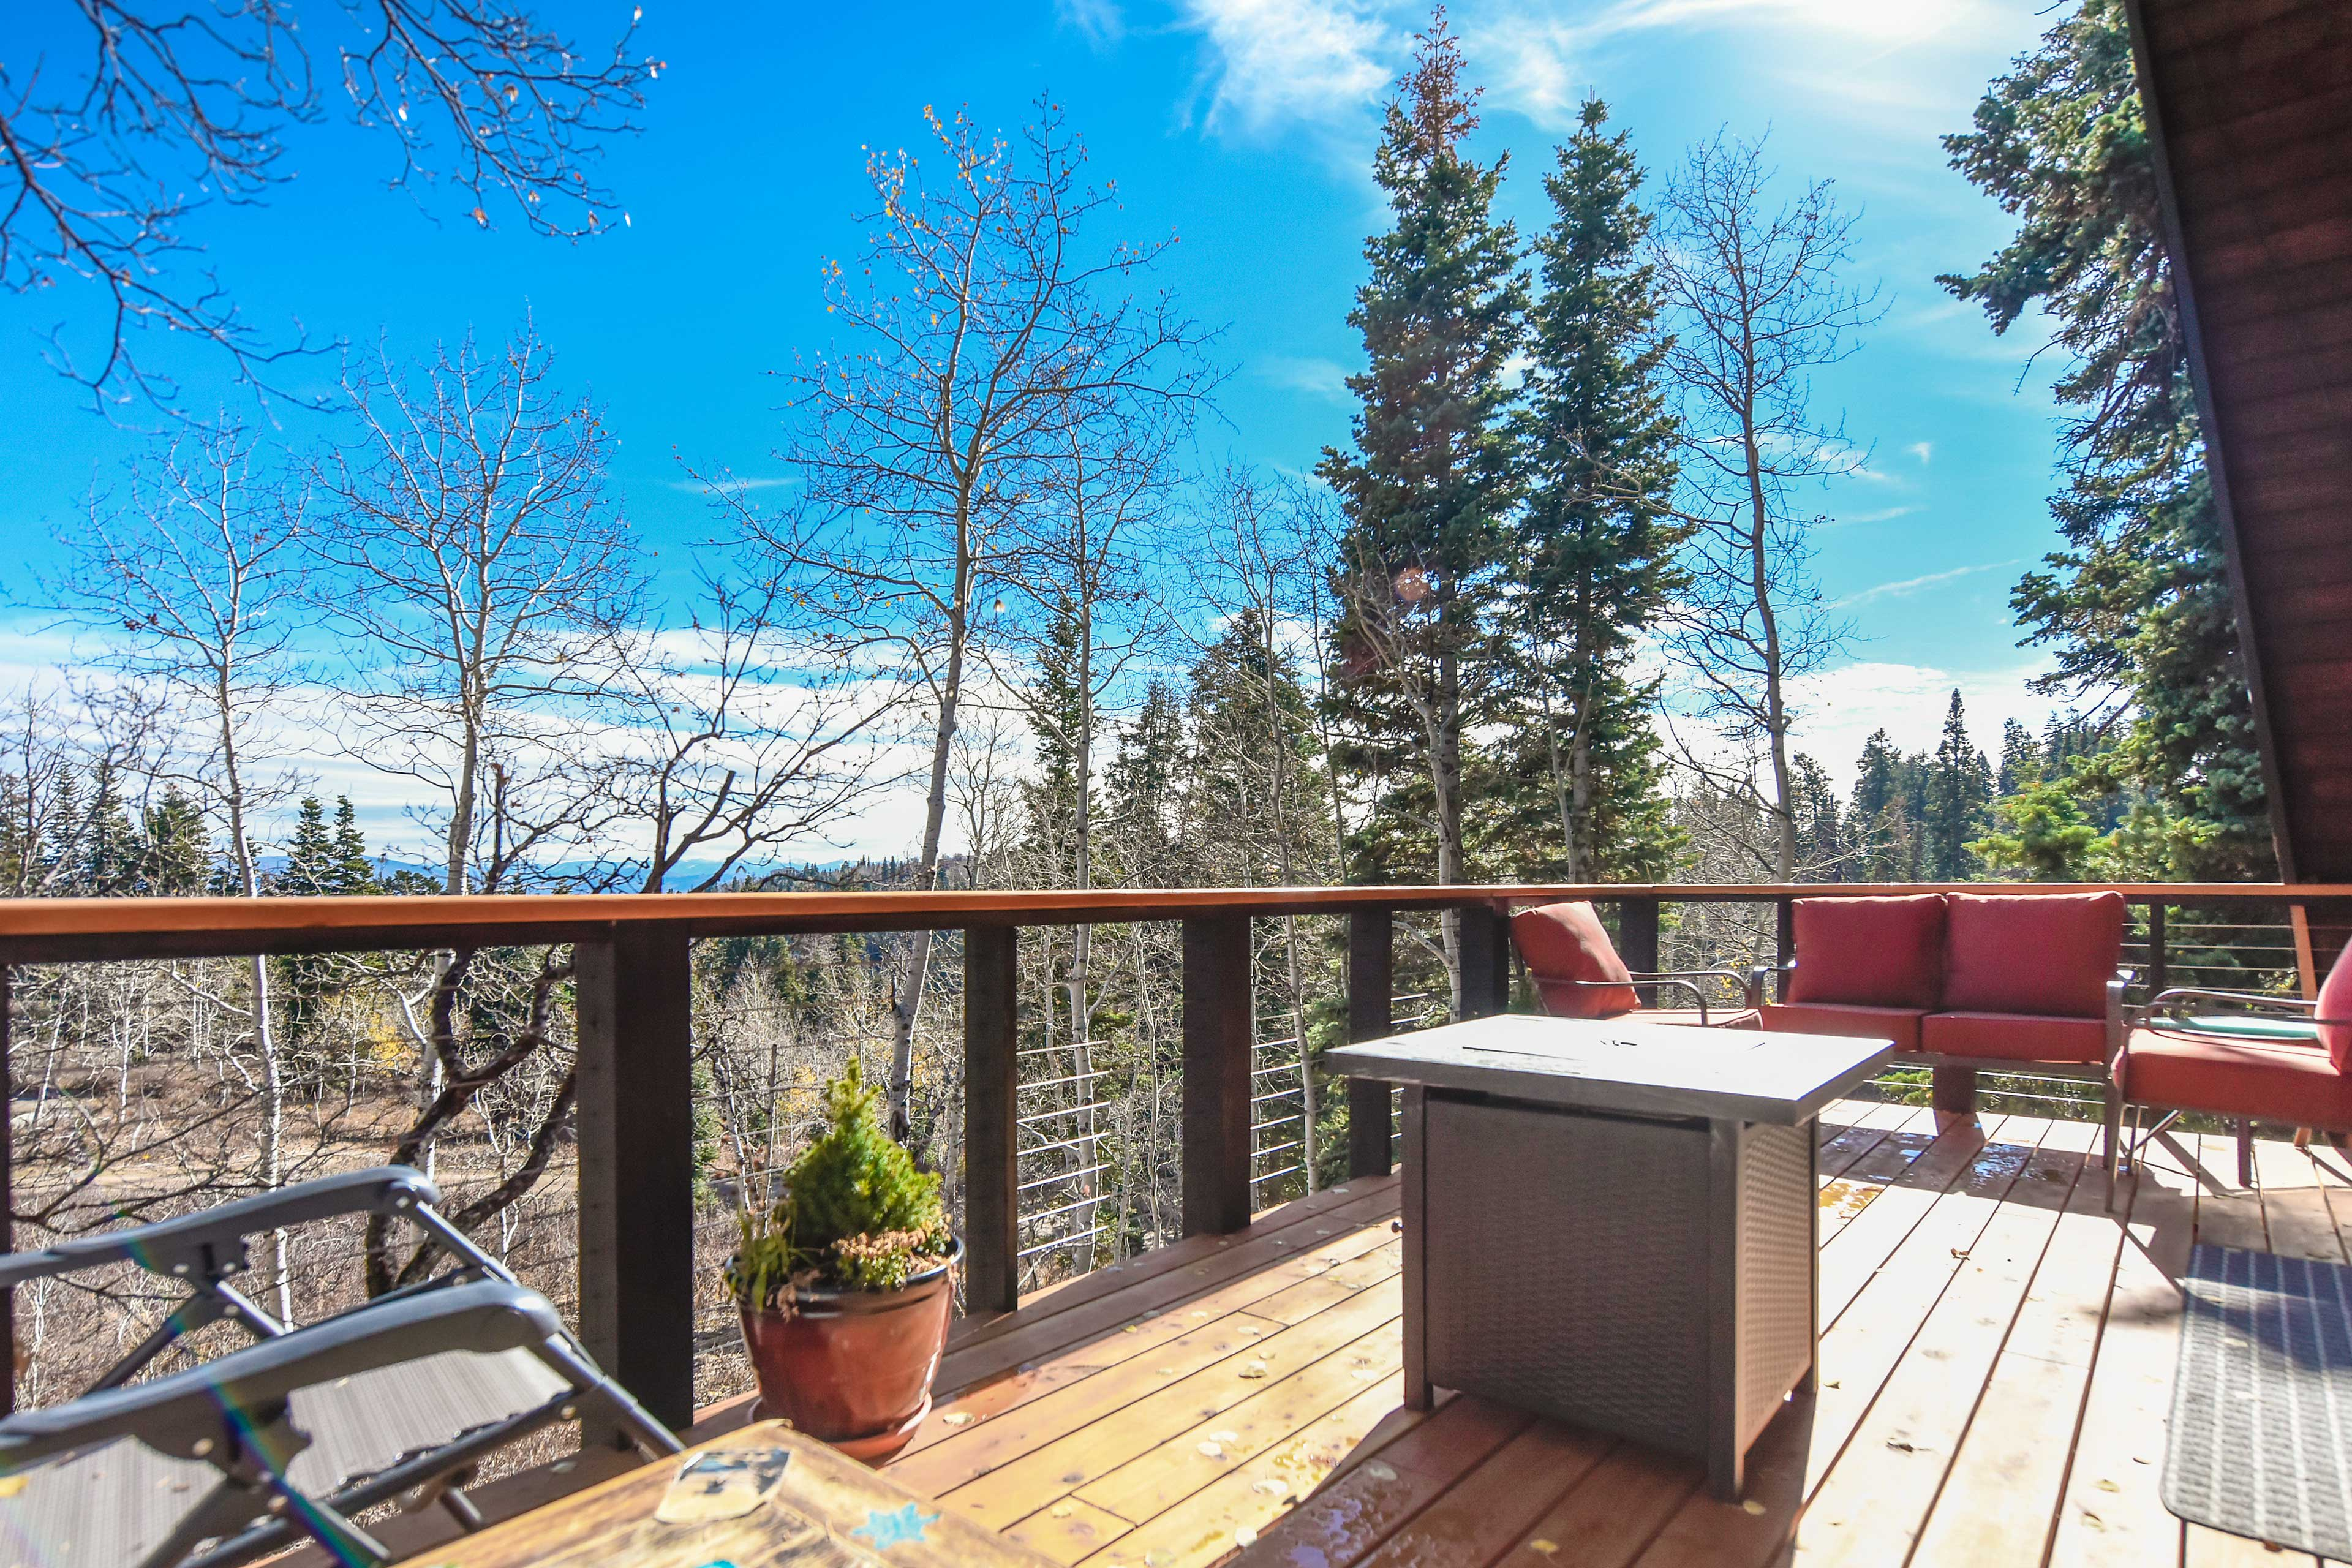 The deck looks out to sweeping views of the Unita Mountains.